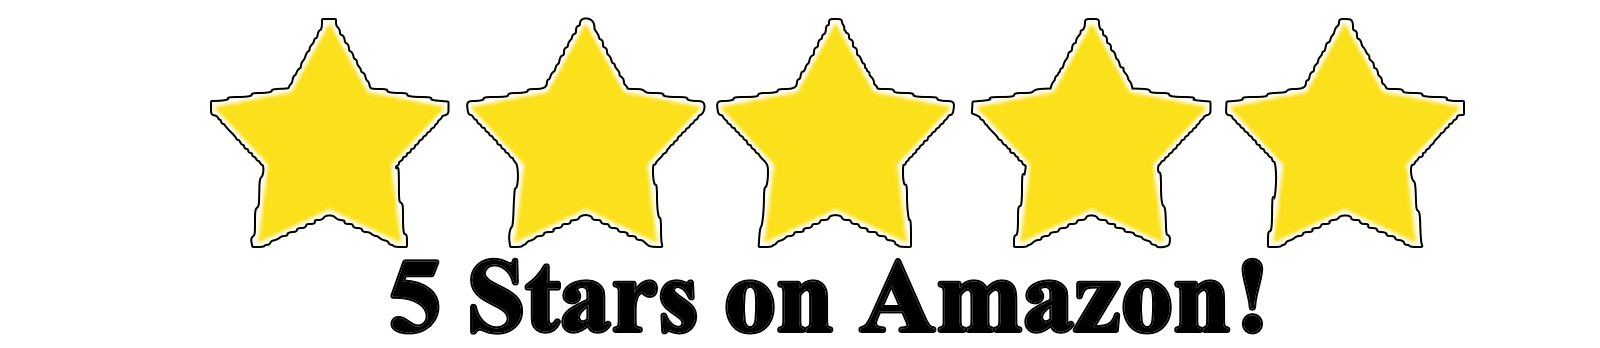 5 Stars Amazon Only.png